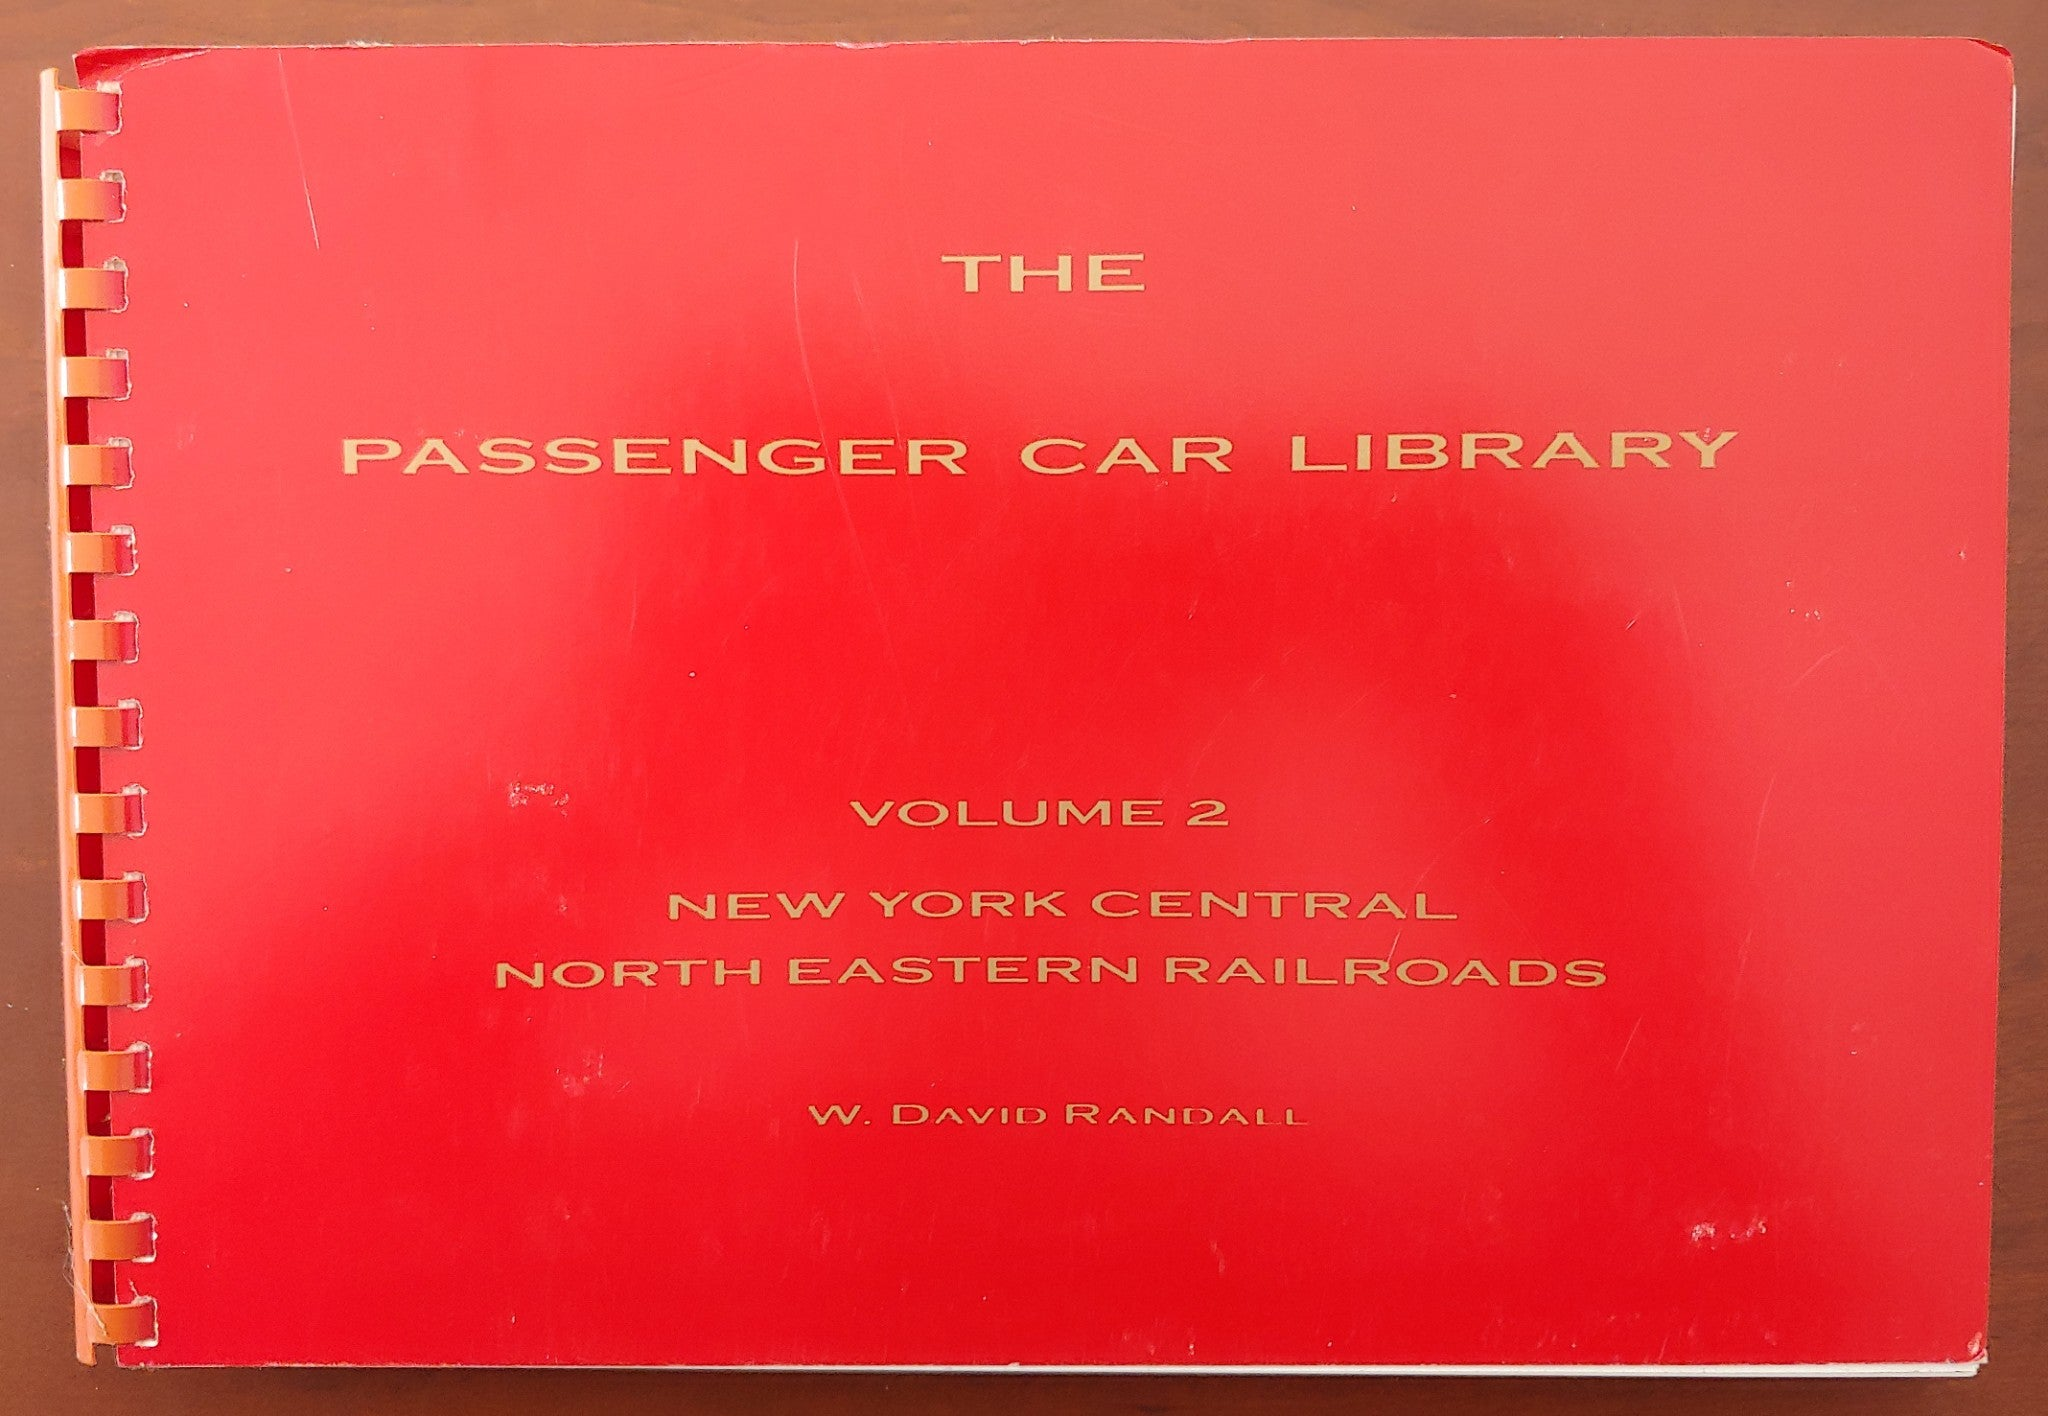 The Passenger Car Library, Vol. 2 - New York Central - Northeast Railroads